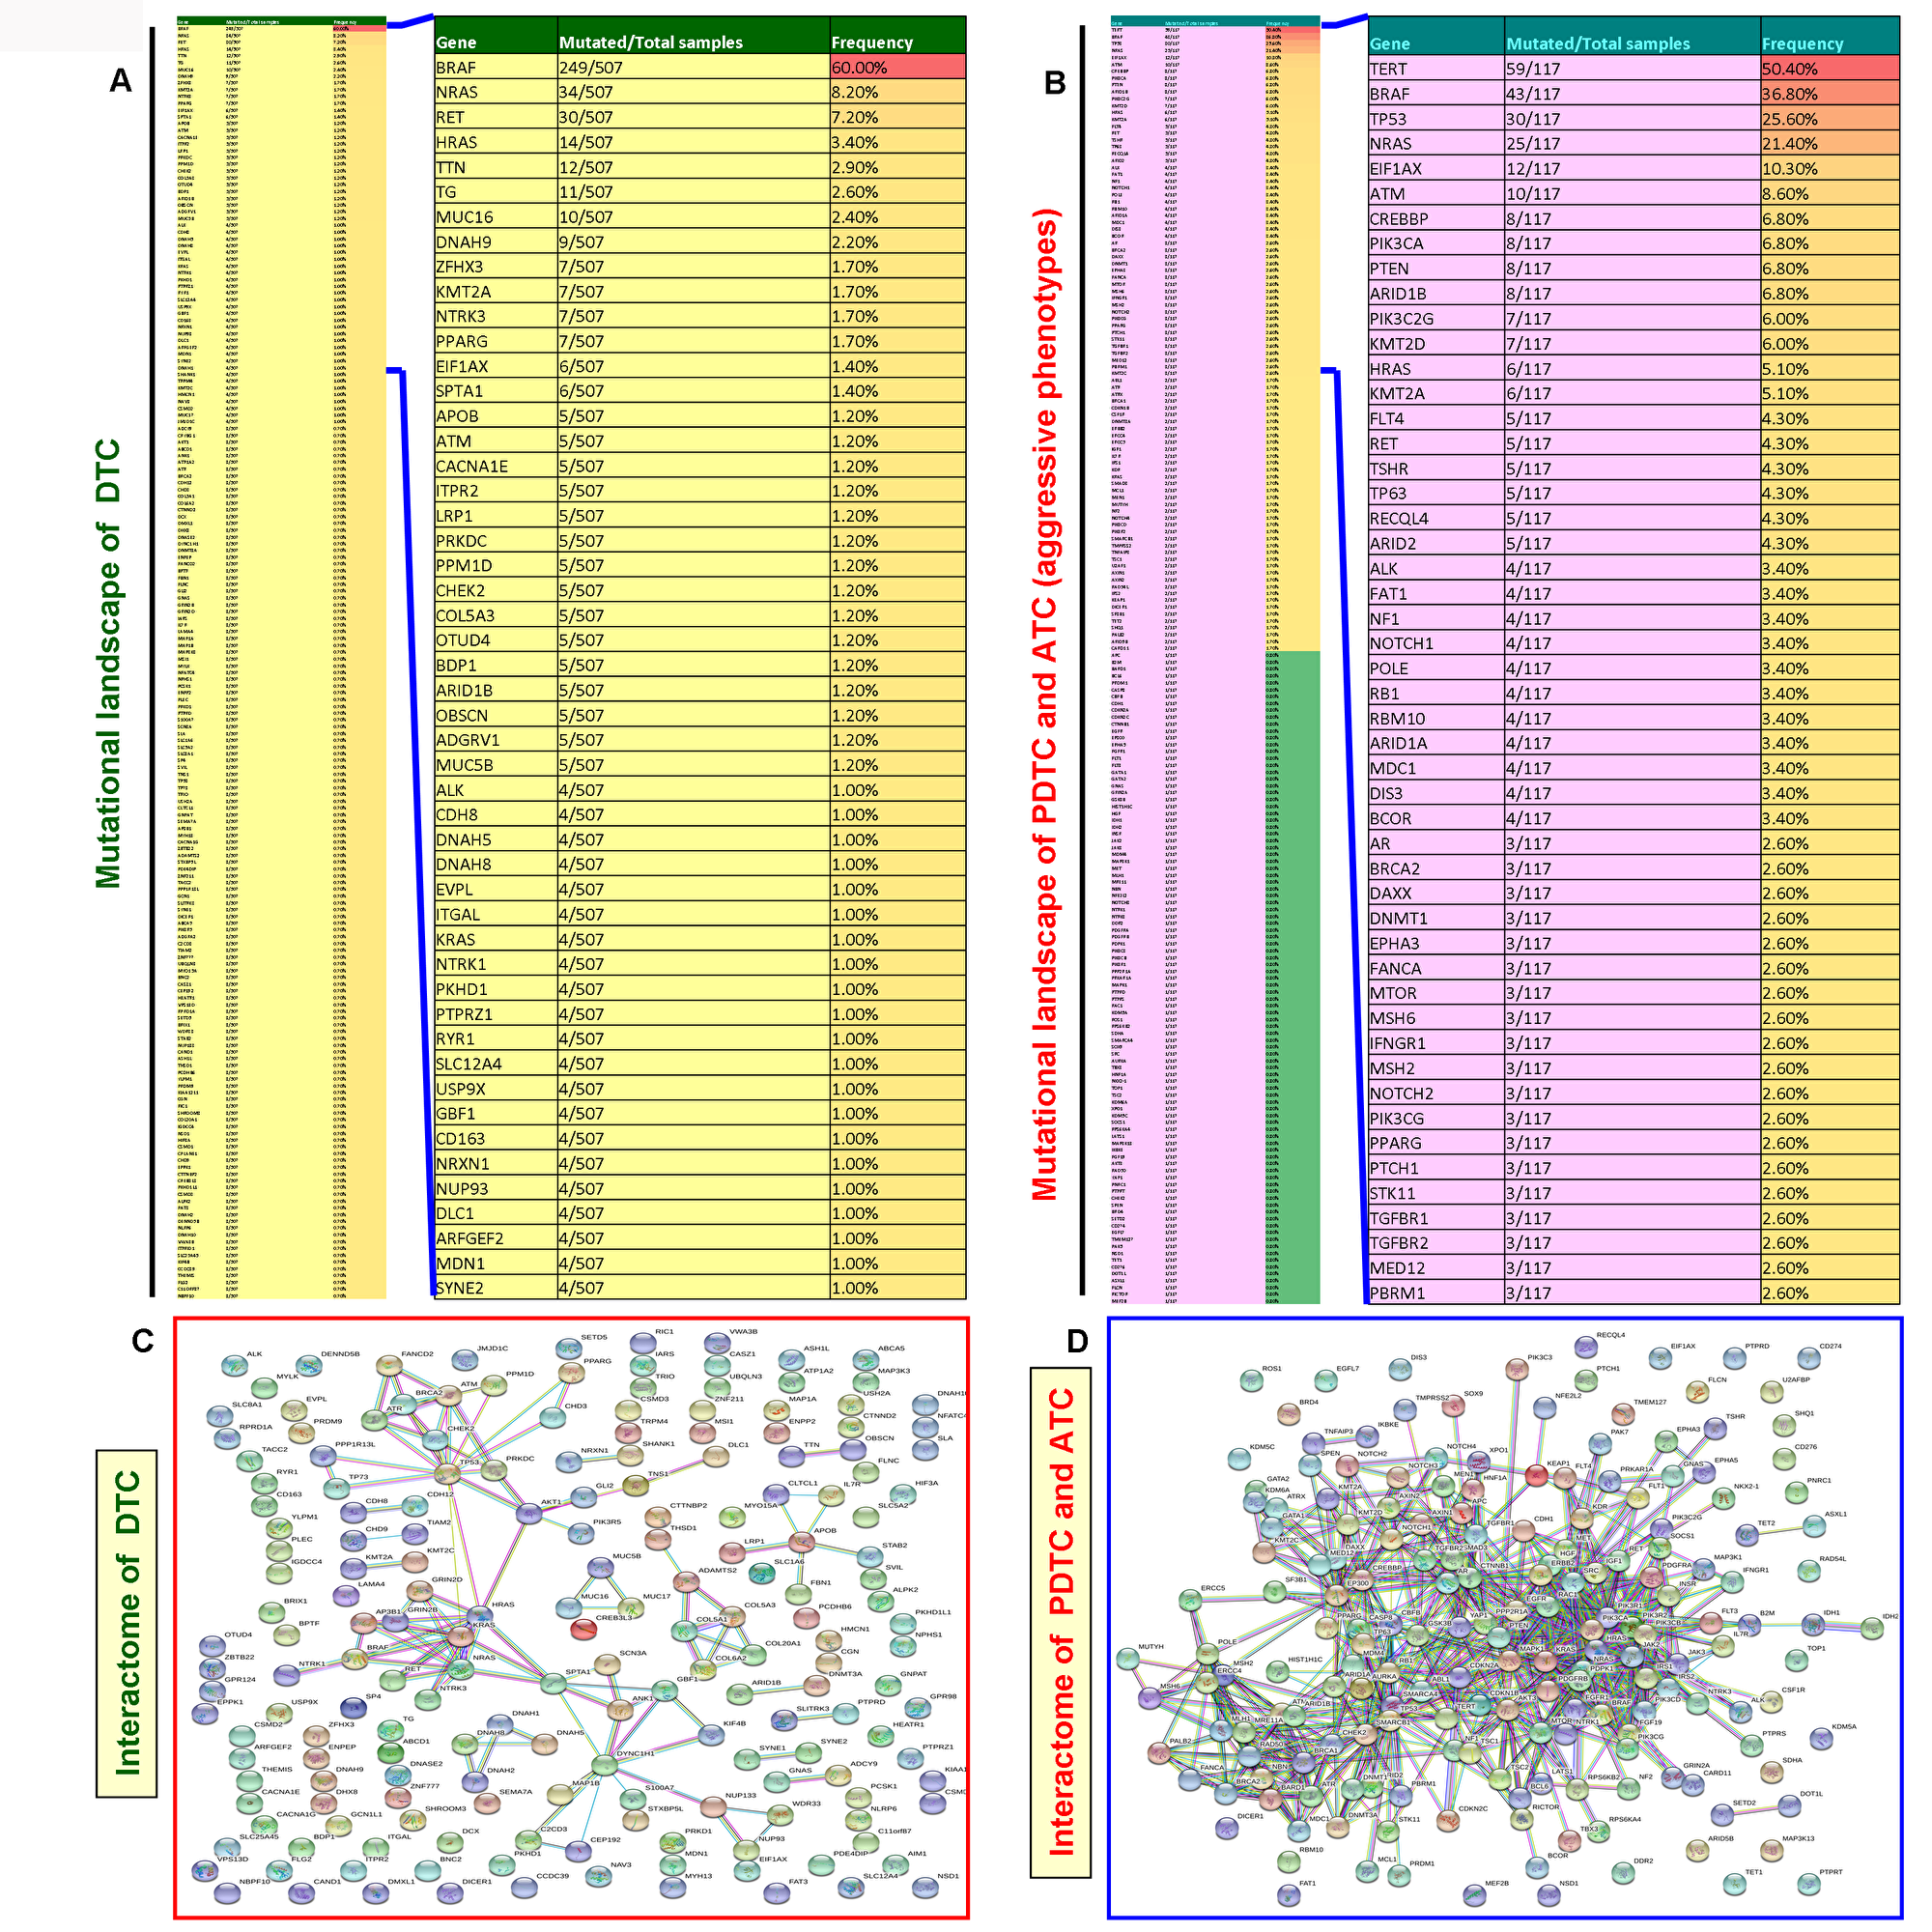 Mutated gene-mediated interactome of DTC and aggressive thyroid cancers (PDTC and ATC).